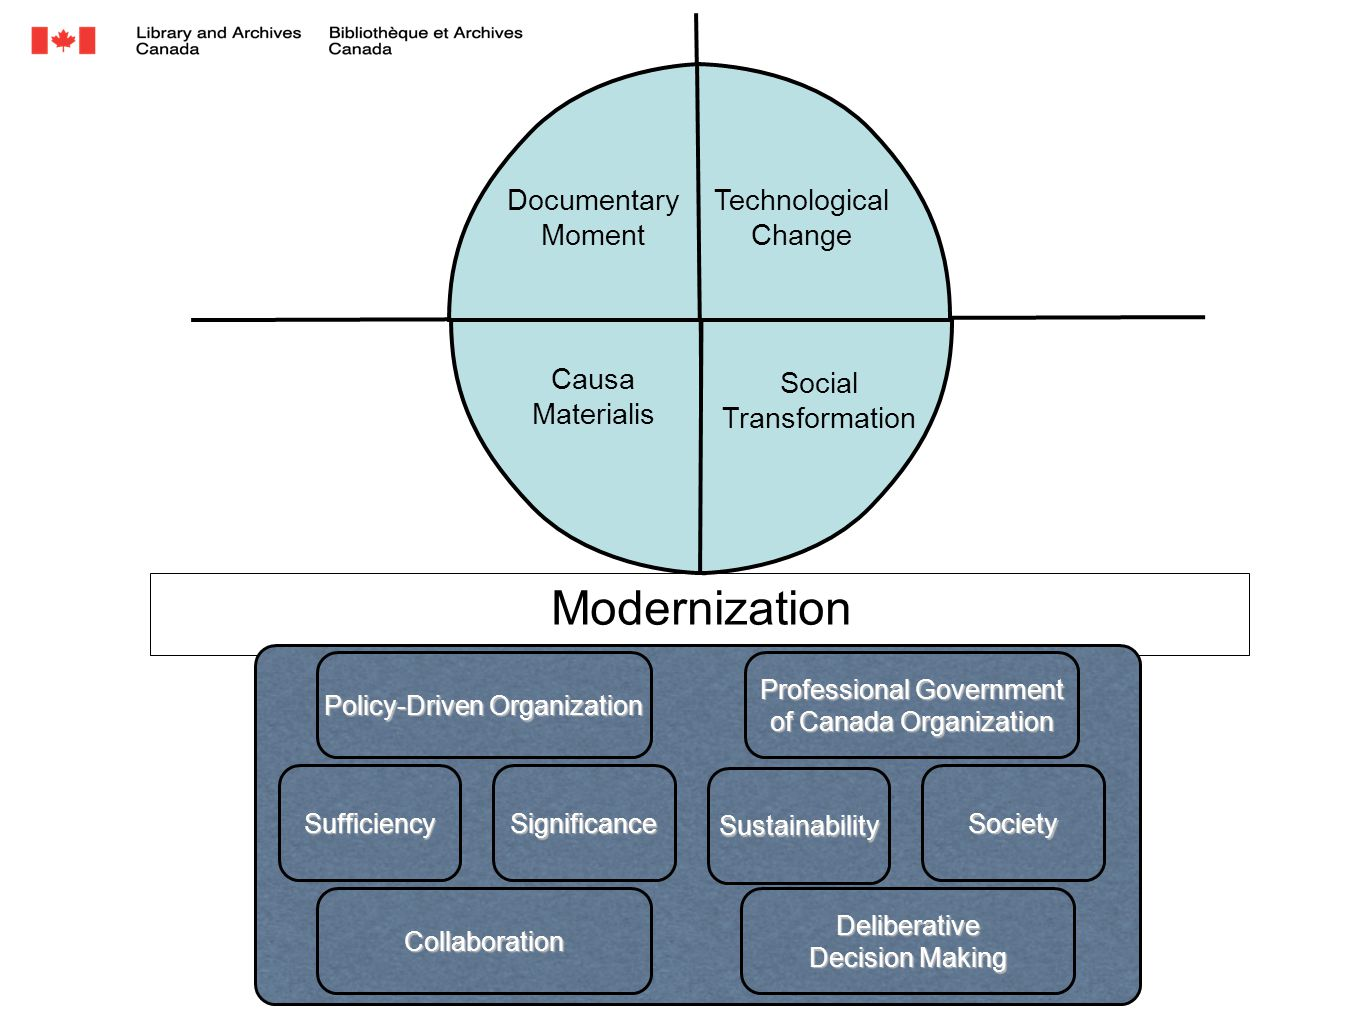 Modernization SufficiencySignificance Sustainability Society Causa Materialis Social Transformation Documentary Moment Technological Change Policy-Dri